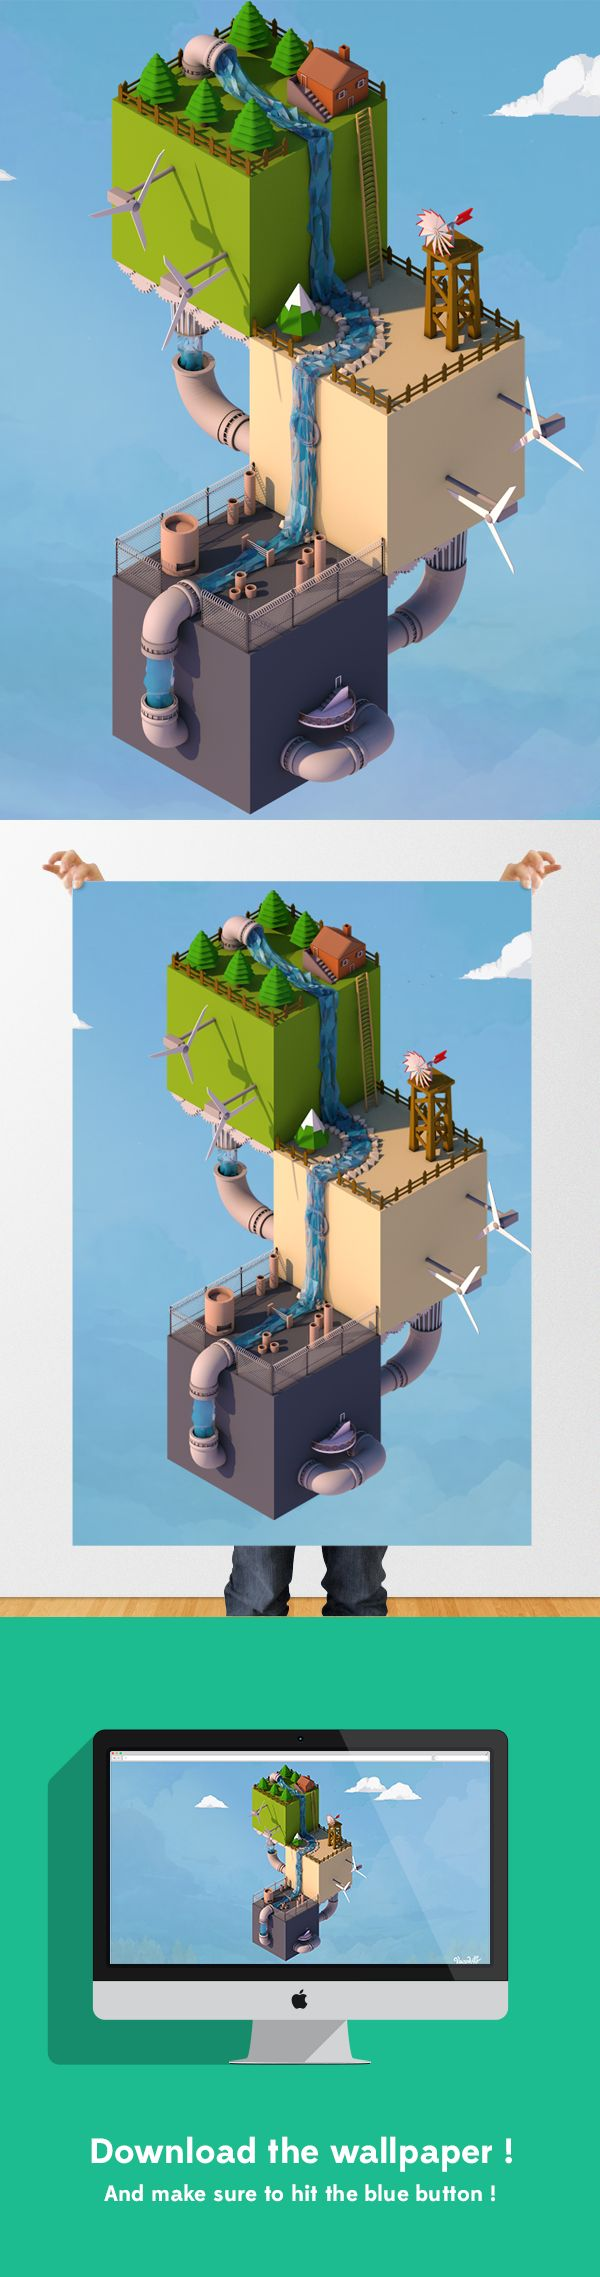 Isometric Low Poly World - by Kiril Climson  (Vancouver)